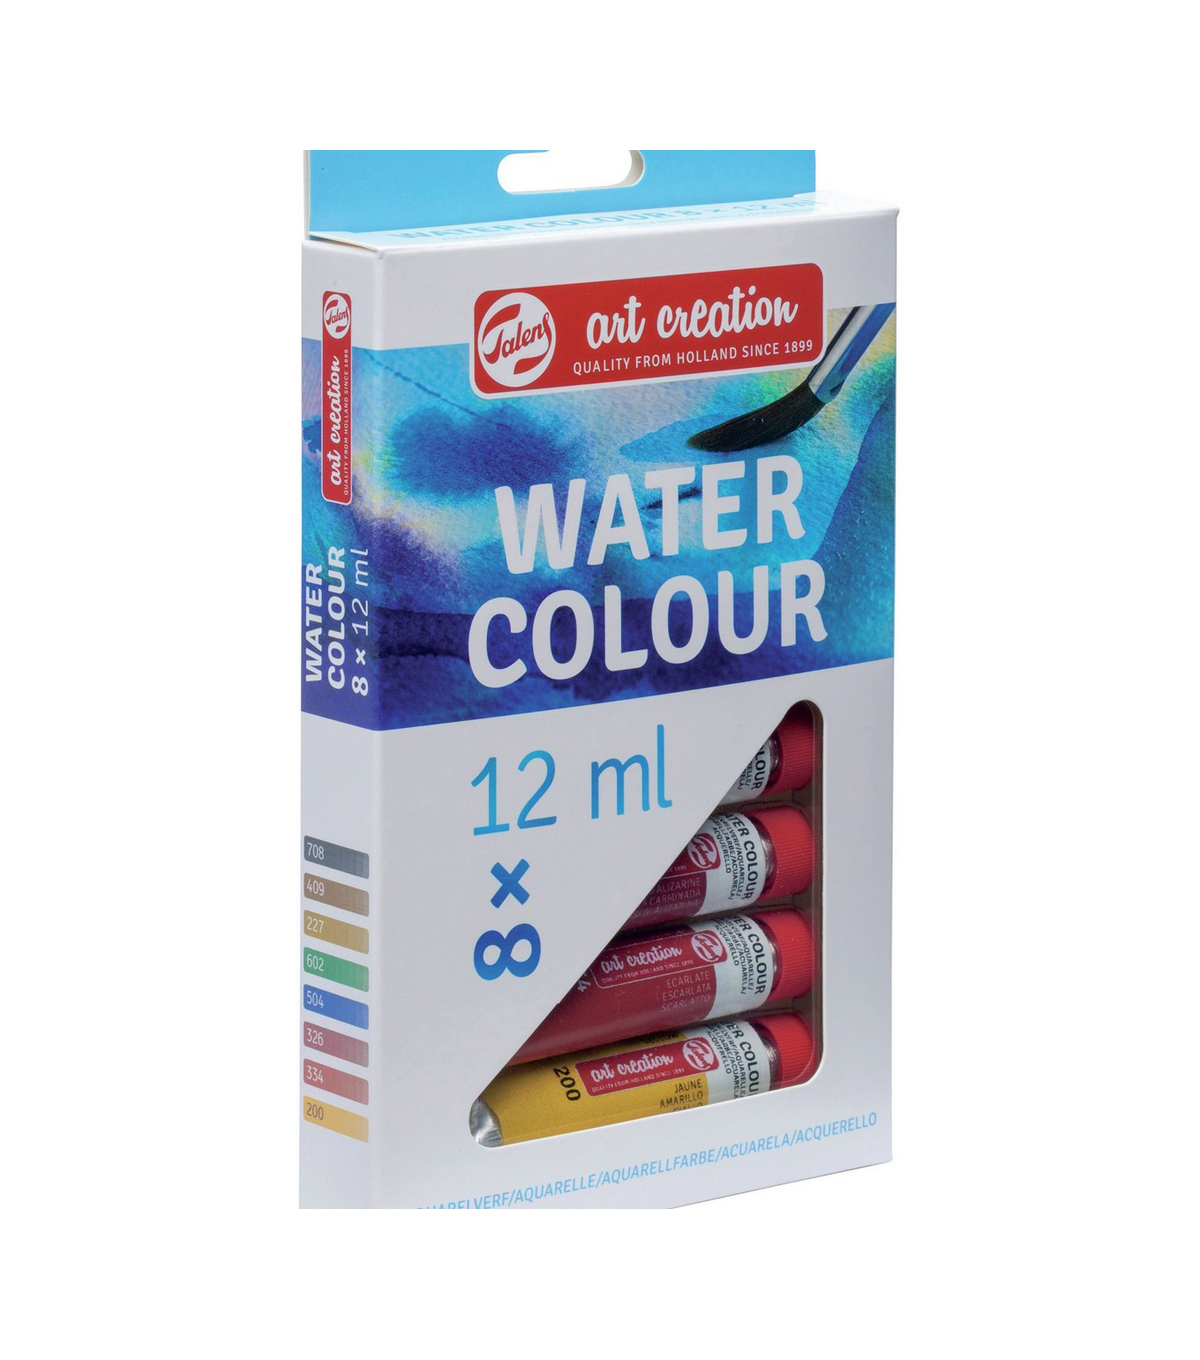 Talens Art Creation 8 pk 0.4 fl. oz. Water Colour Paint